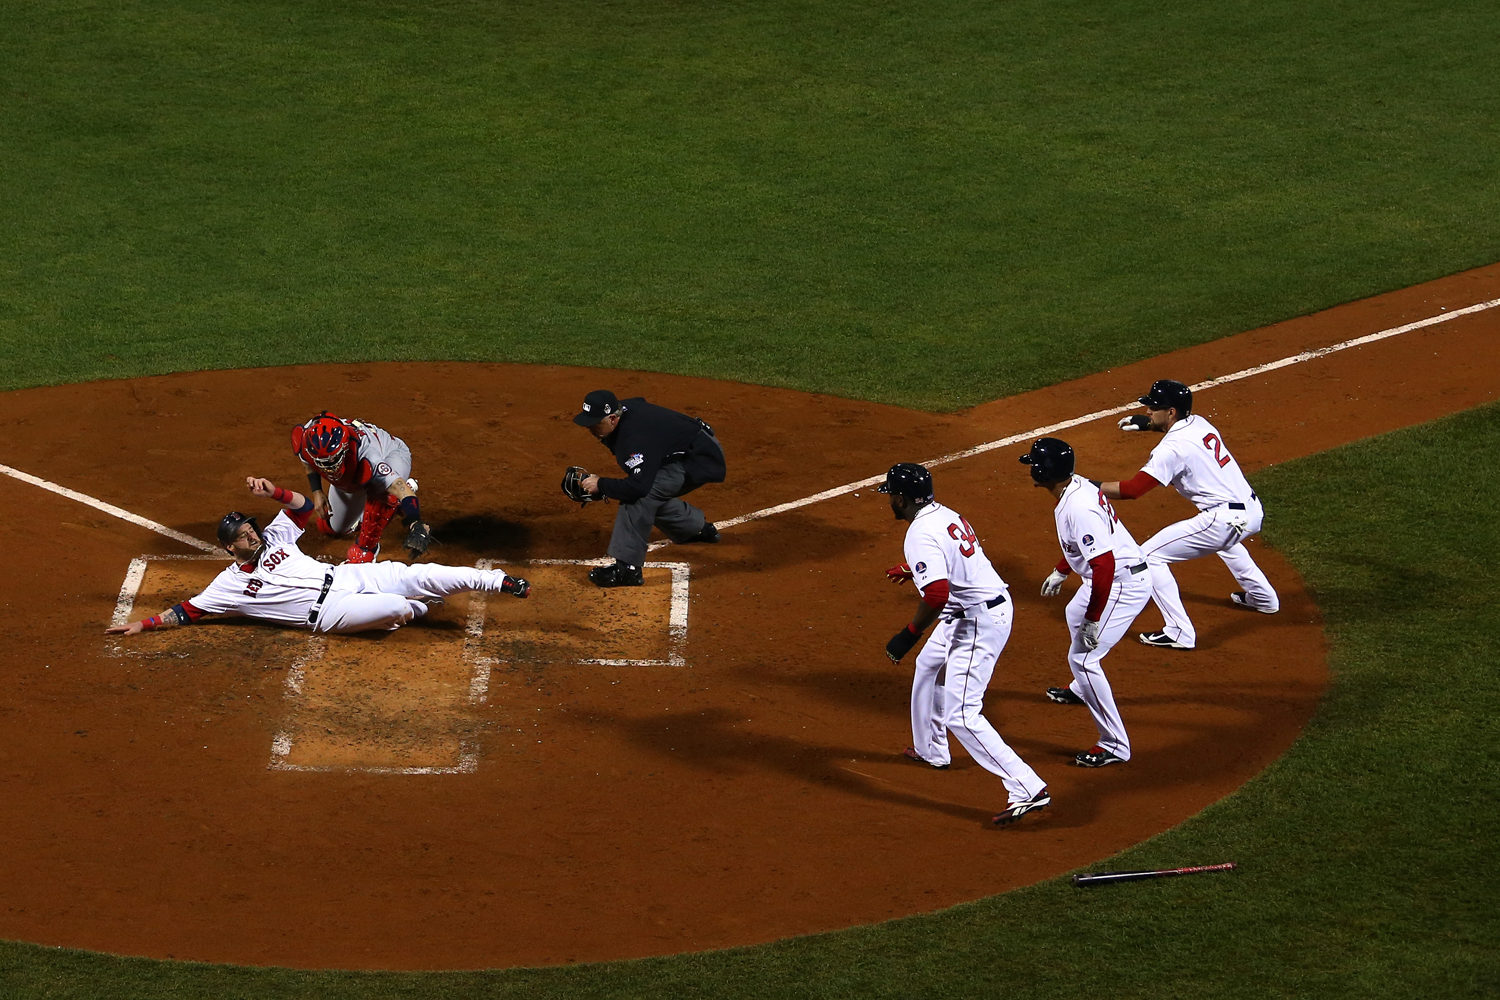 Oct. 30, 2013. Jonny Gomes #5 of the Boston Red Sox slides safely into home plate as Yadier Molina #4 of the St. Louis Cardinals tries to make the play during Game Six of the 2013 World Series at Fenway Park in Boston, Mass.